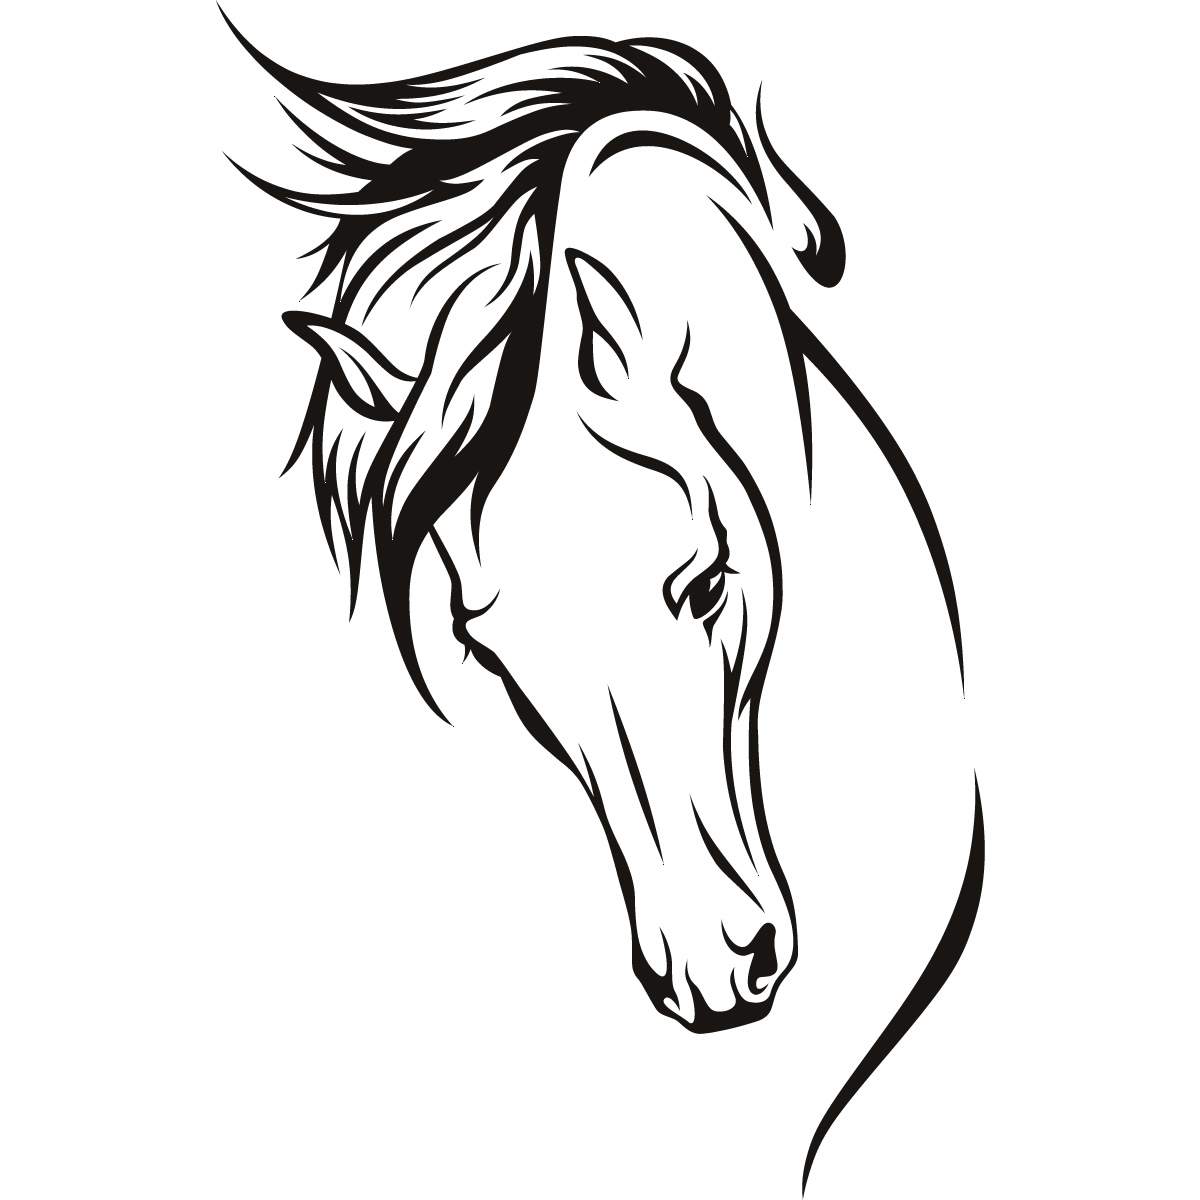 1200x1200 Horse Head Gallery For Free Horse Line Drawing Clip Art Image